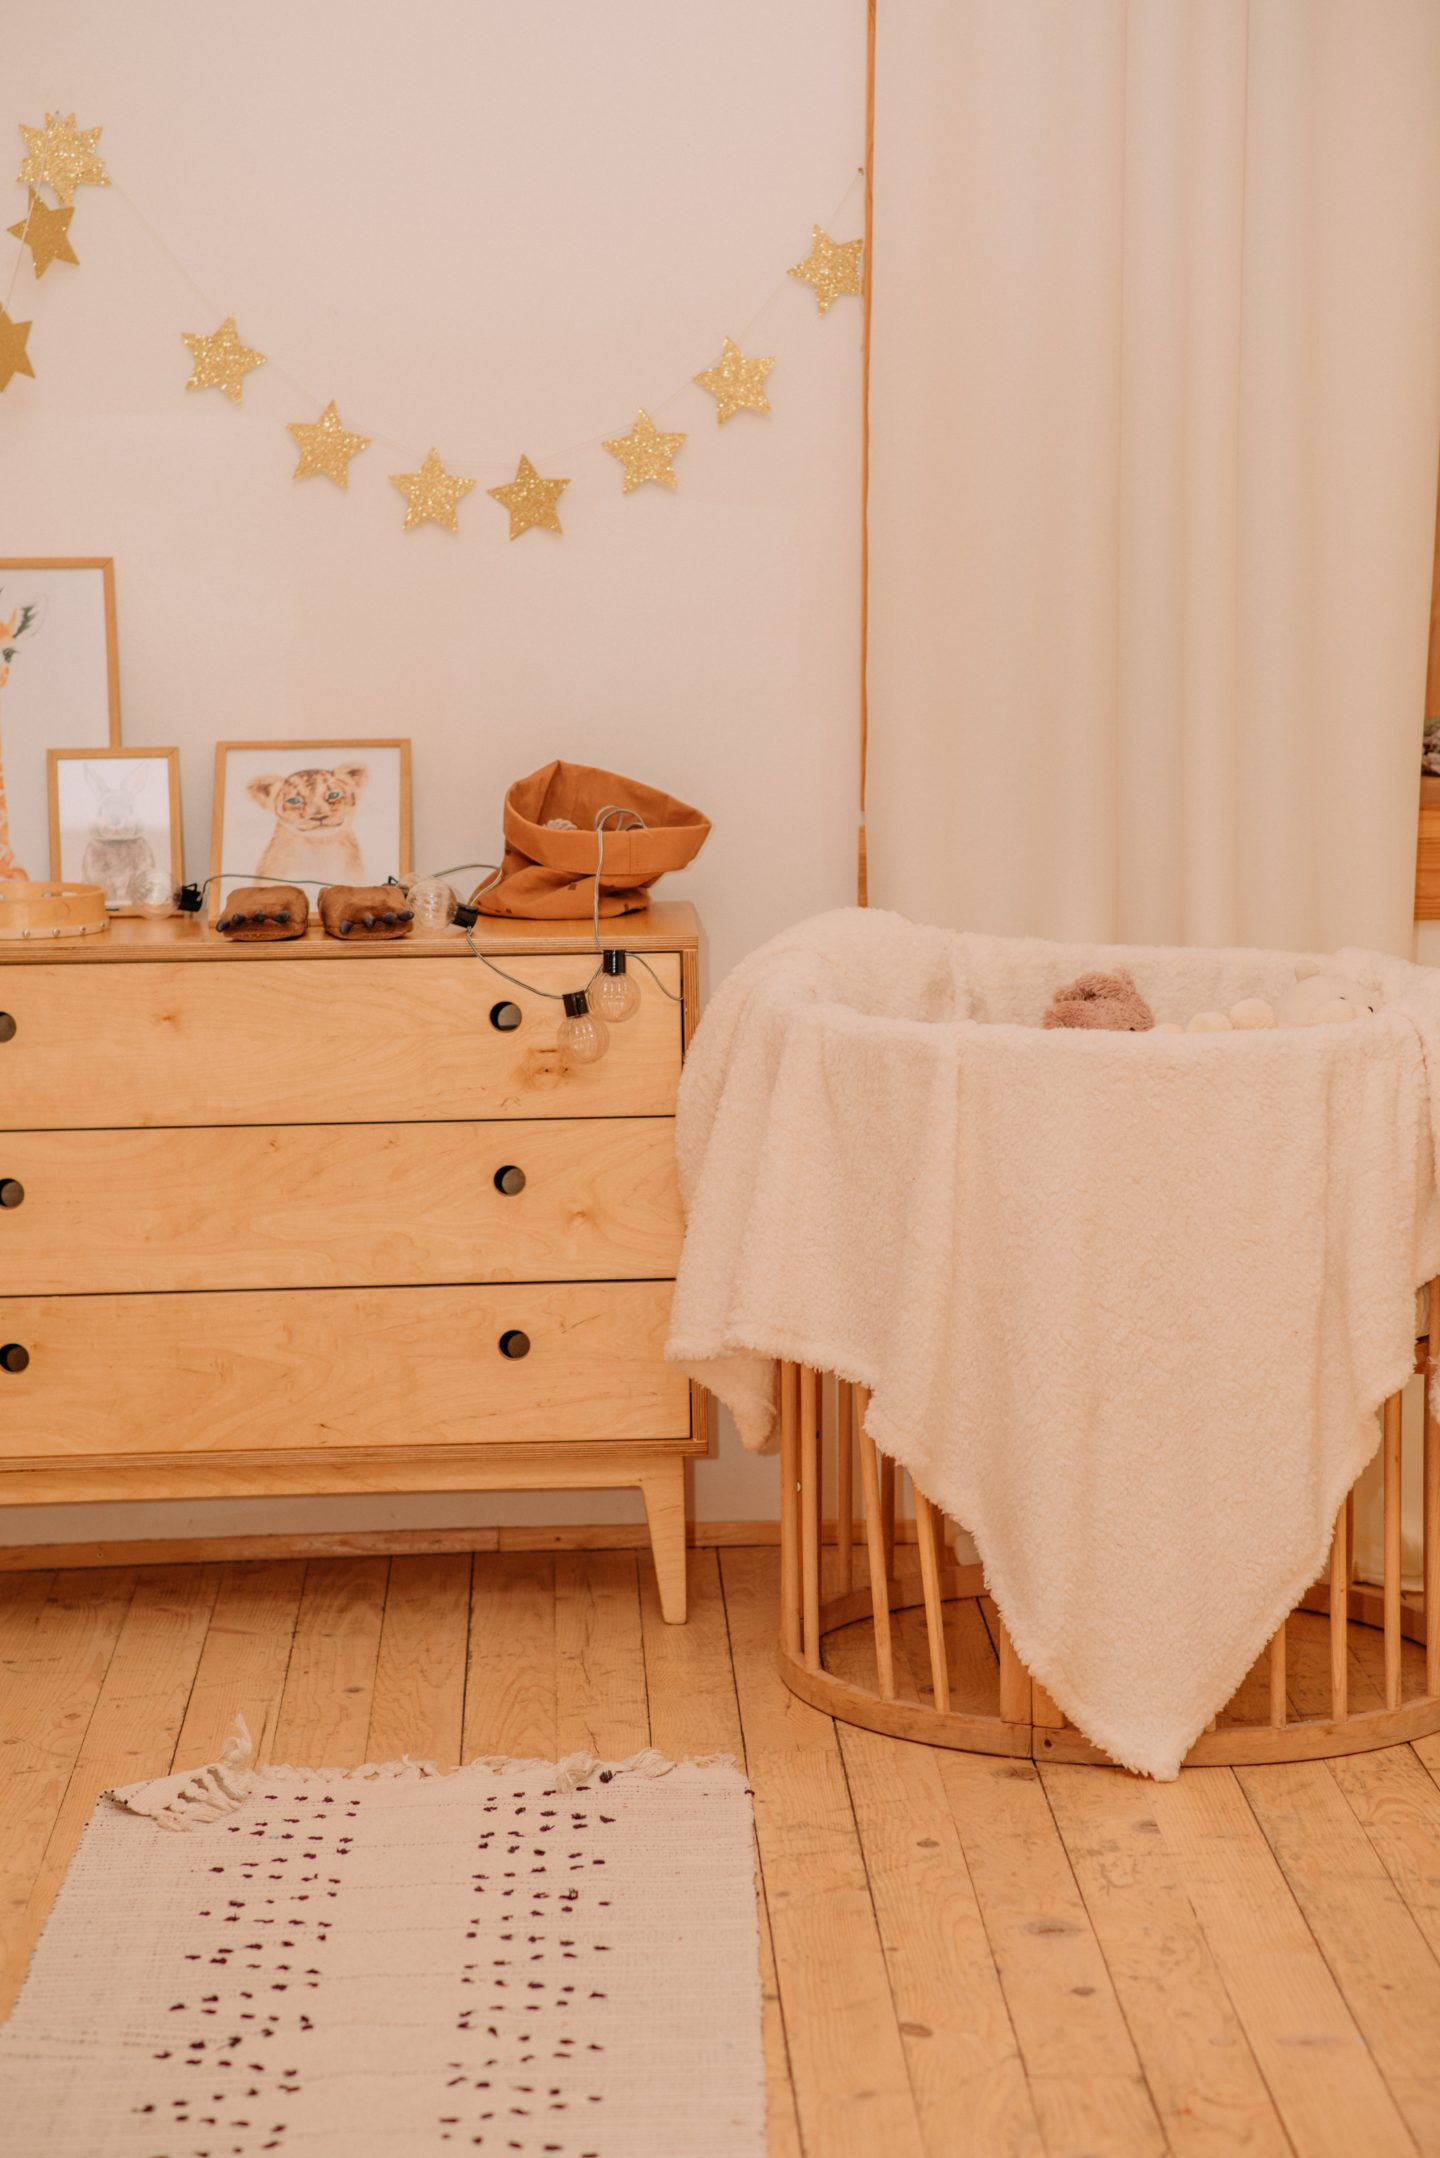 Decorating a nursery on a budget 1